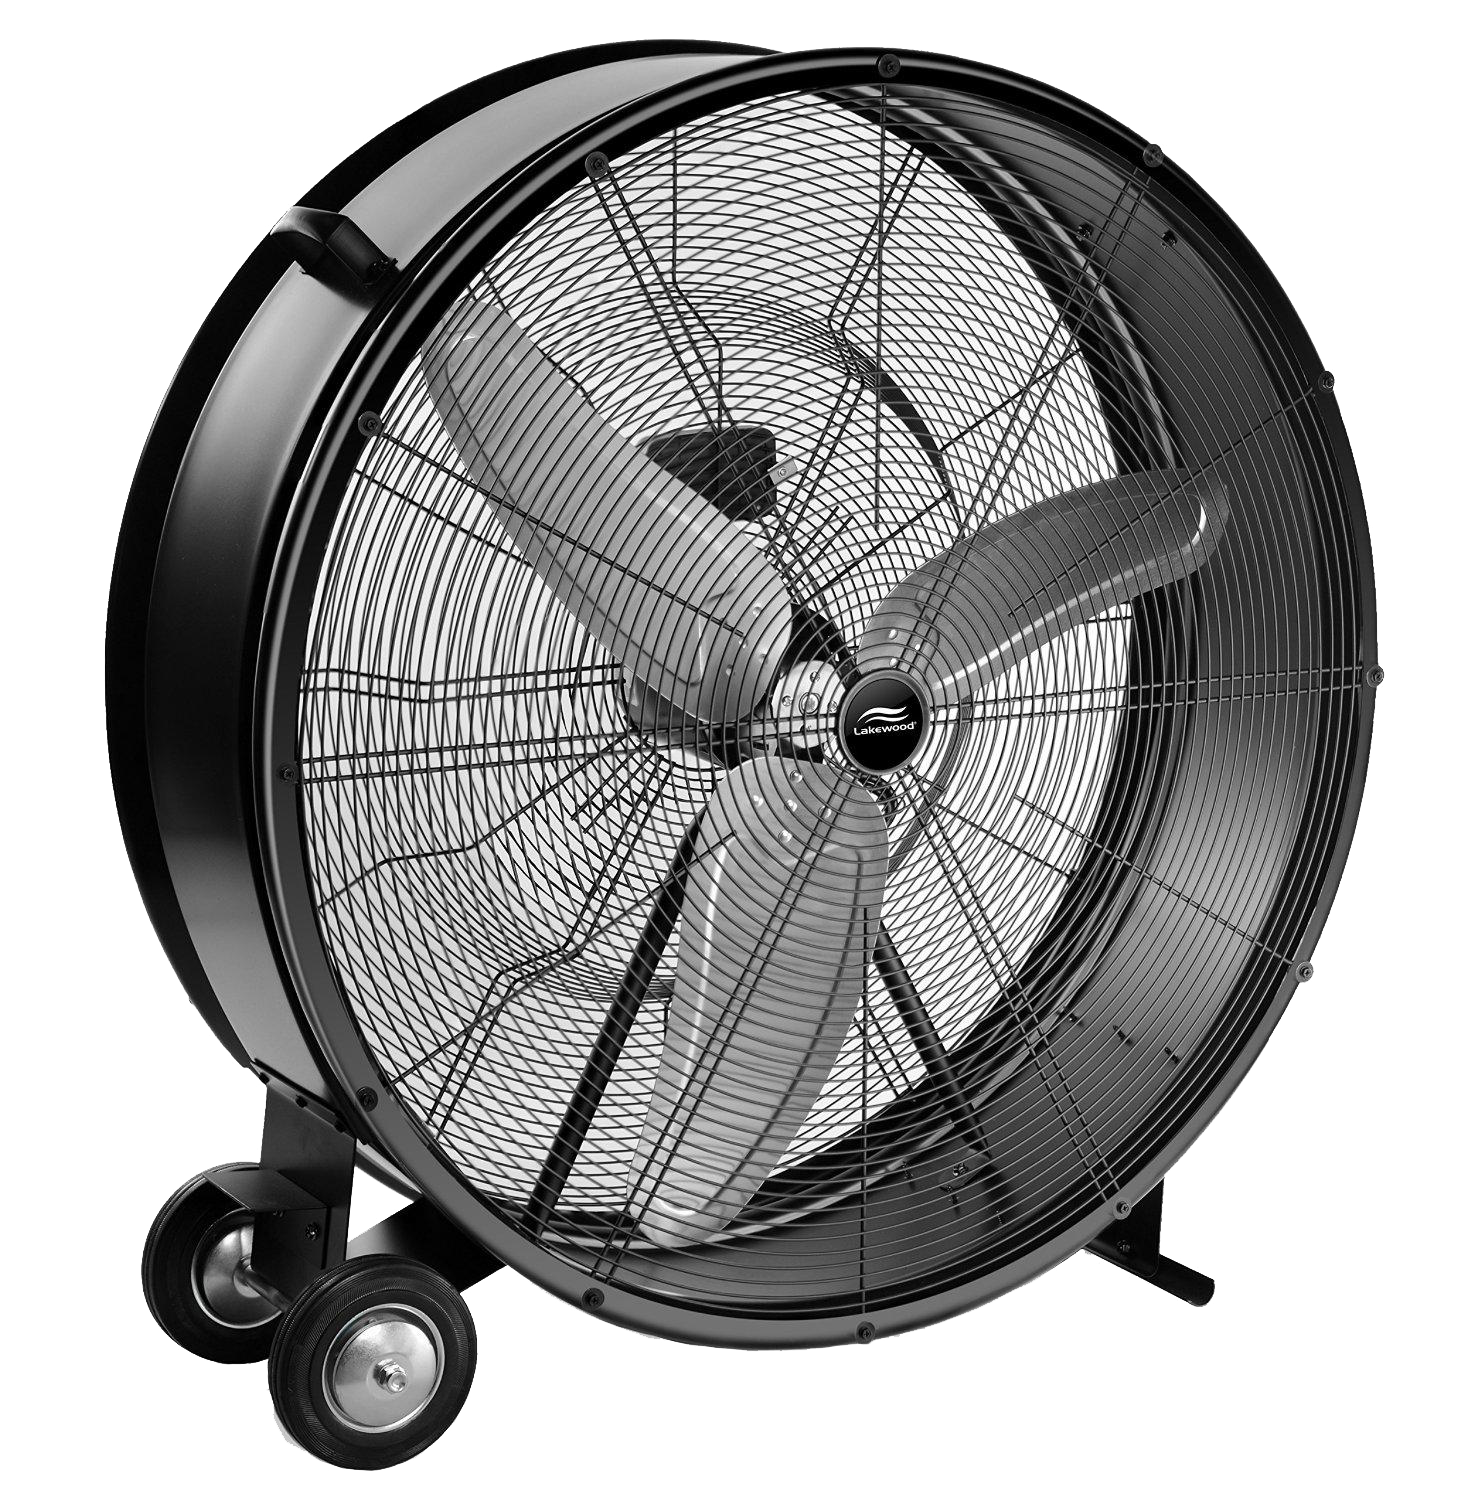 Industrial fan png. Party pros usa